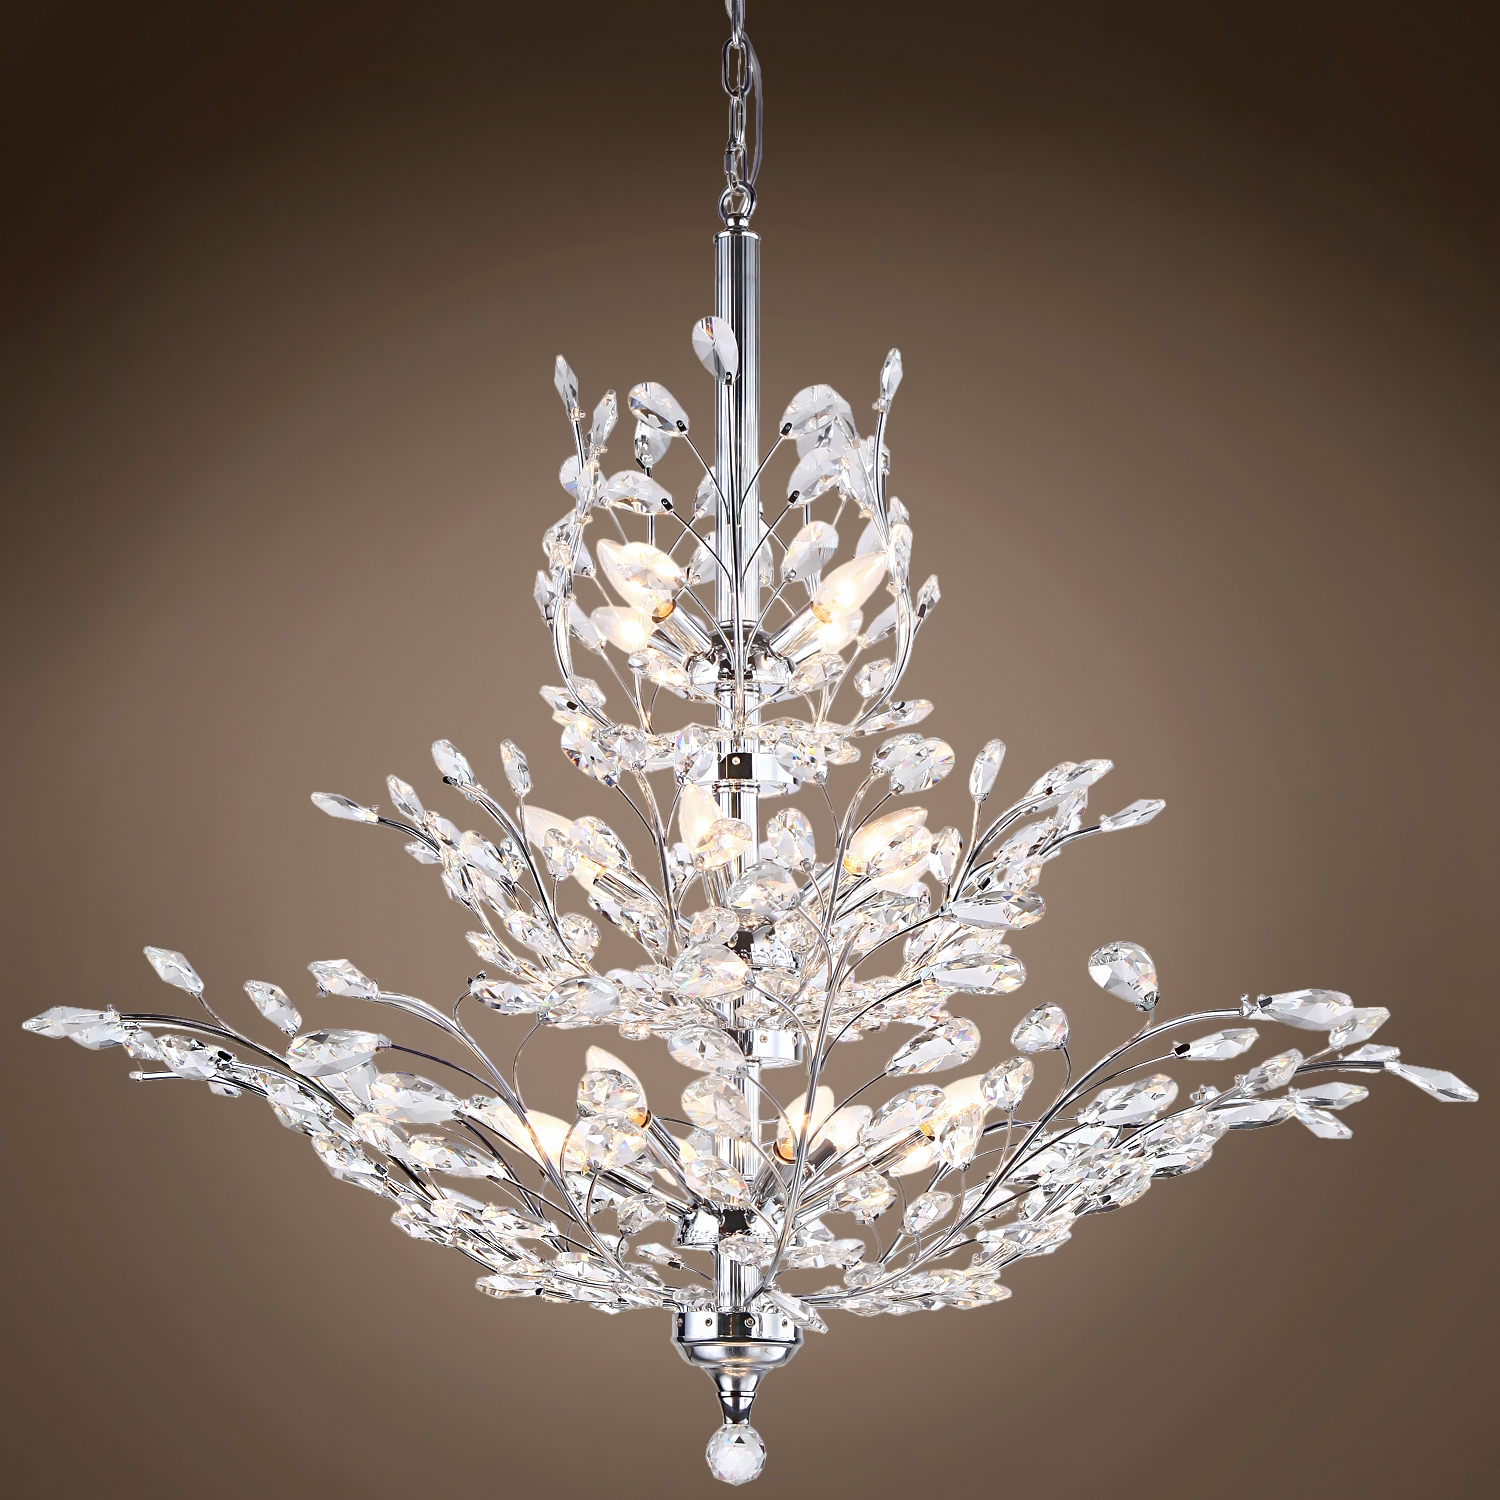 Joshua Marshal 700109 Branch Of Light 13 Light Chrome Chandelier Regarding Branch Crystal Chandelier (Photo 2 of 15)